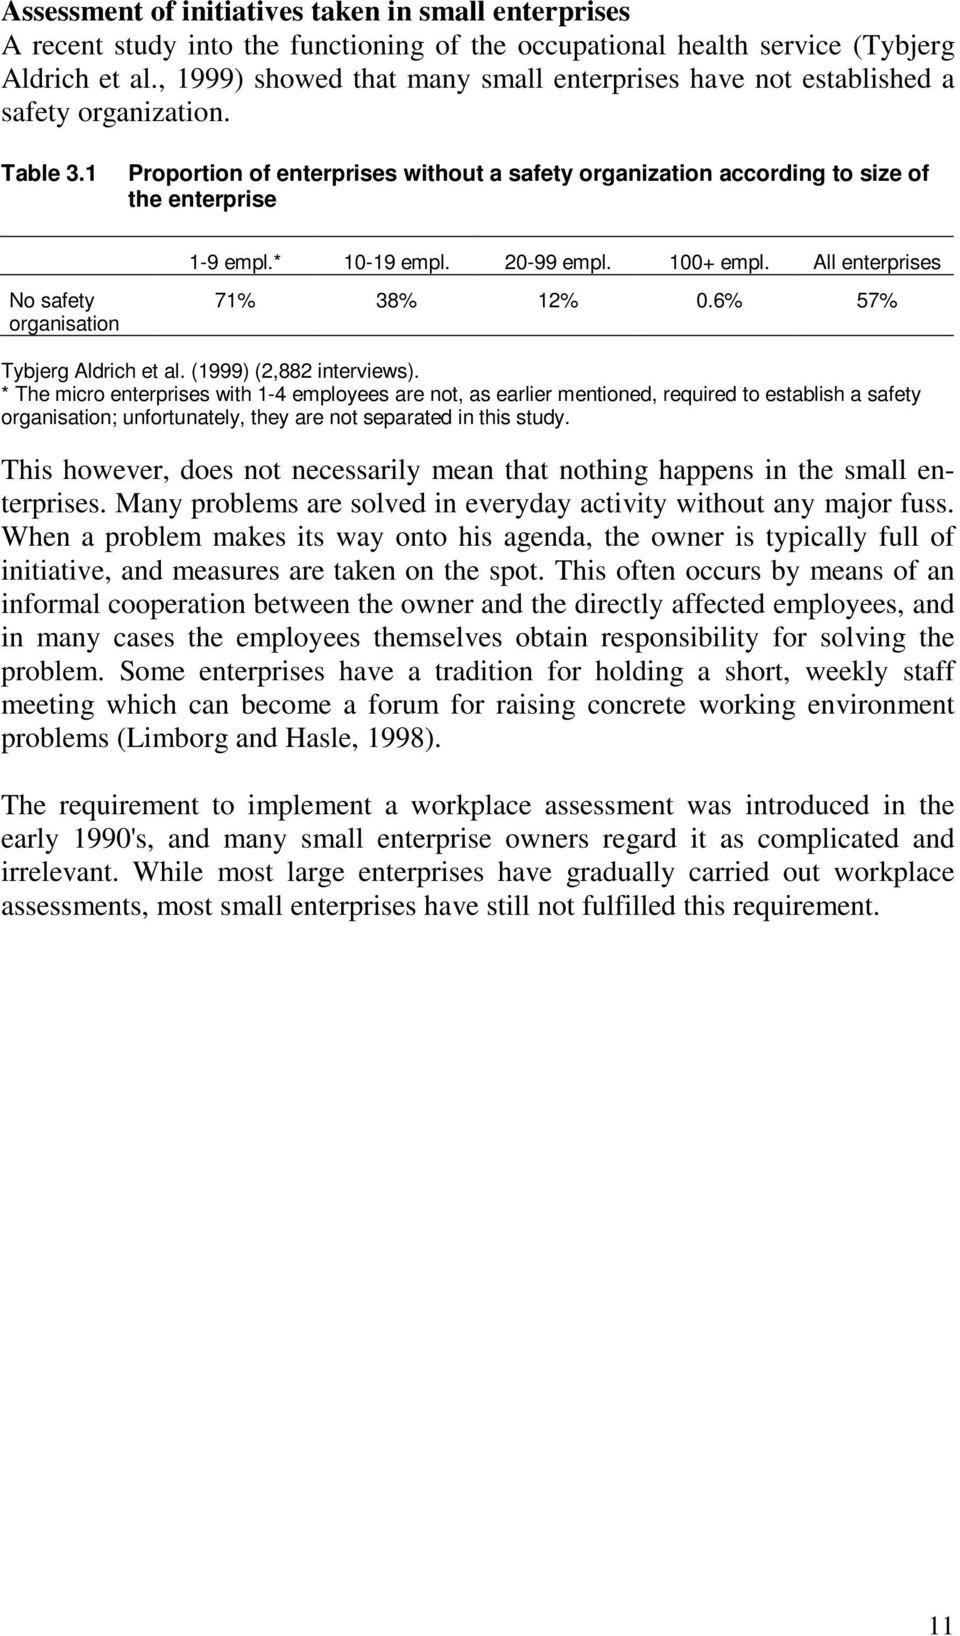 * 10-19 empl. 20-99 empl. 100+ empl. All enterprises No safety organisation 71% 38% 12% 0.6% 57% Tybjerg Aldrich et al. (1999) (2,882 interviews).